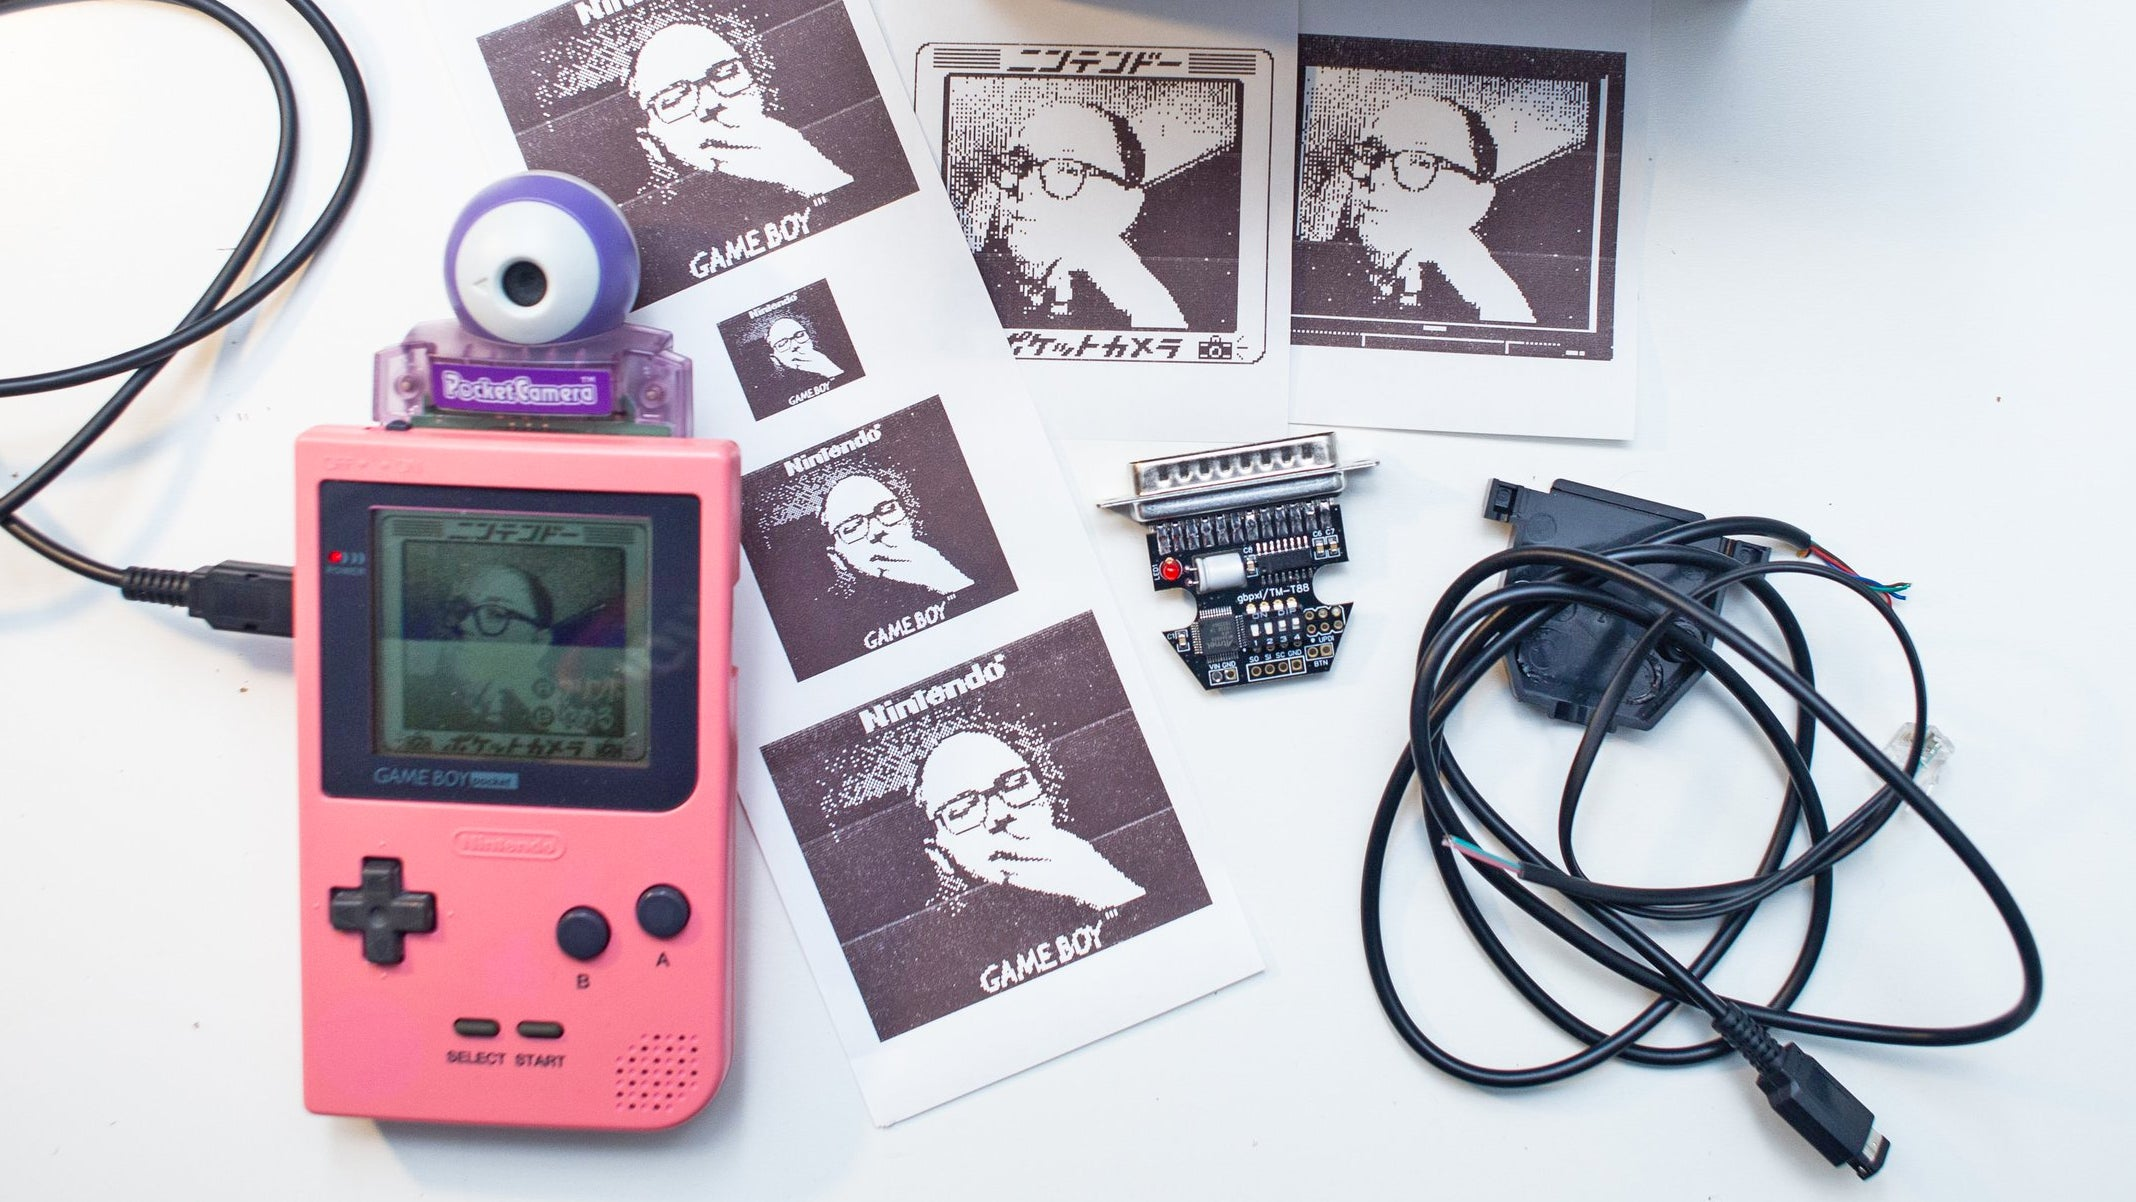 You Can Connect Your Game Boy Camera To Modern Printers Using This $30 Adaptor